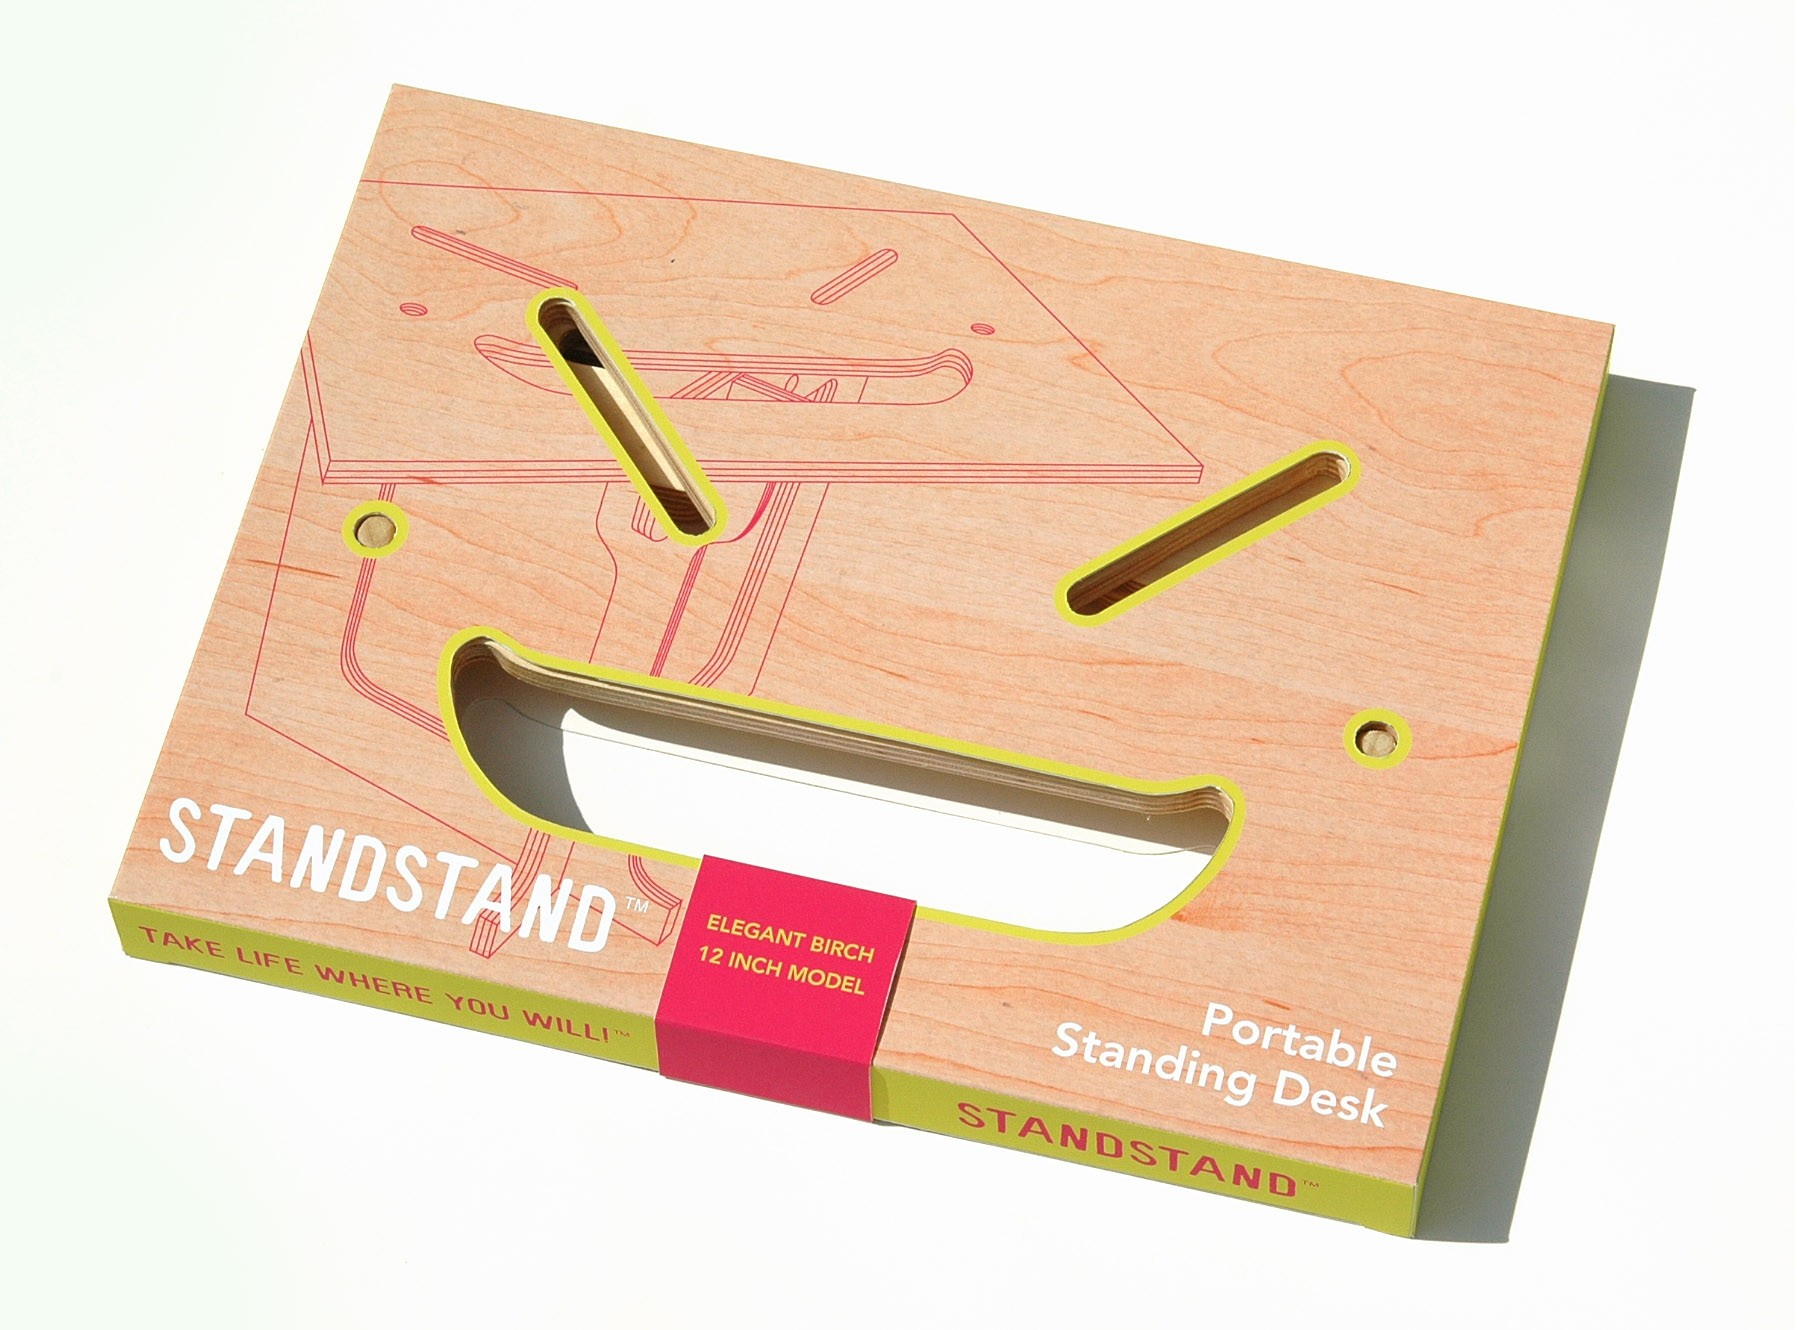 StandStand packaging 2